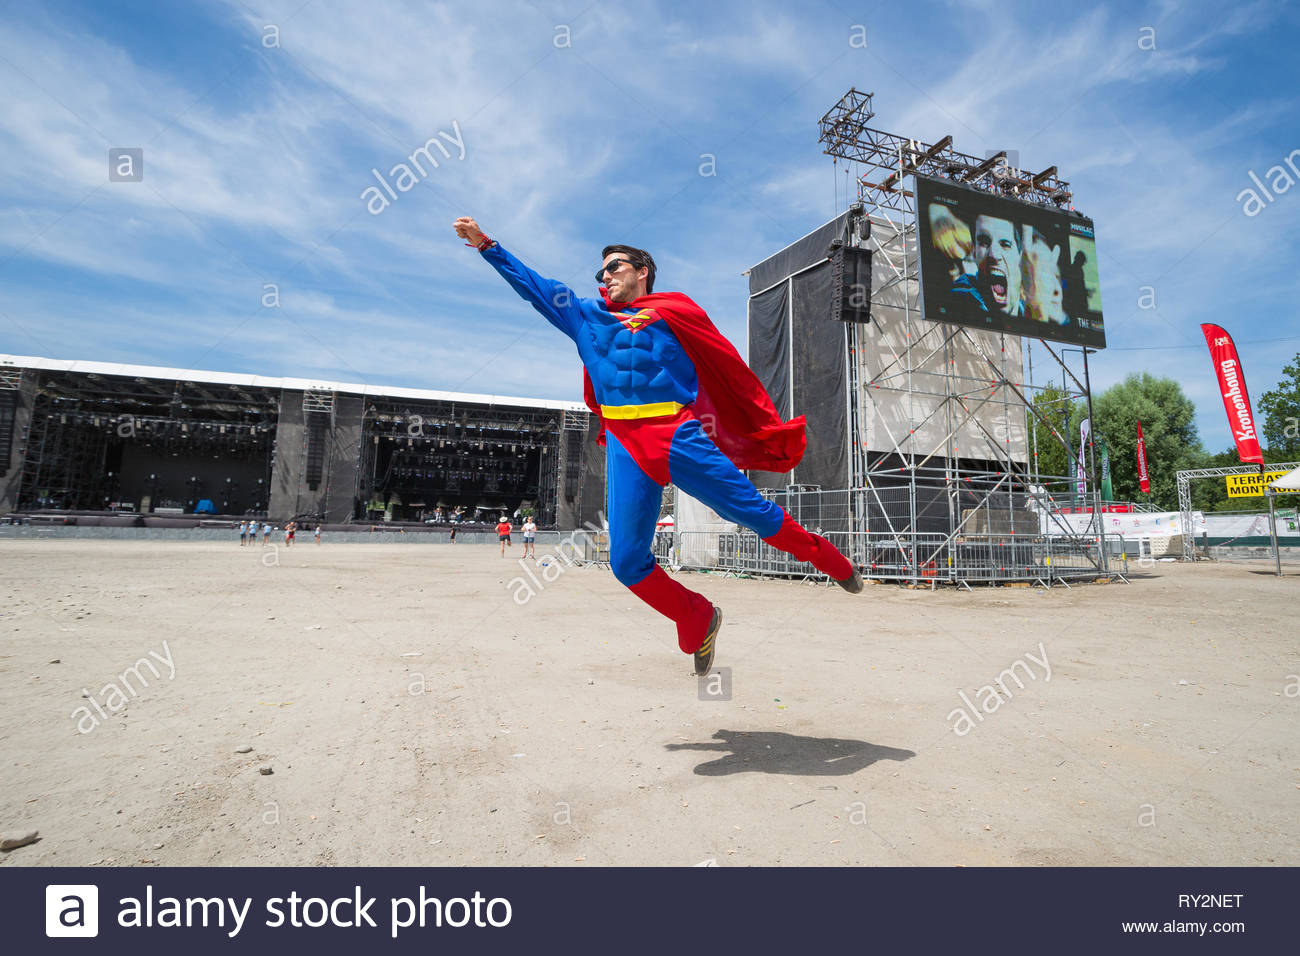 Superman supervising Musilac sumer festival - Stock Image